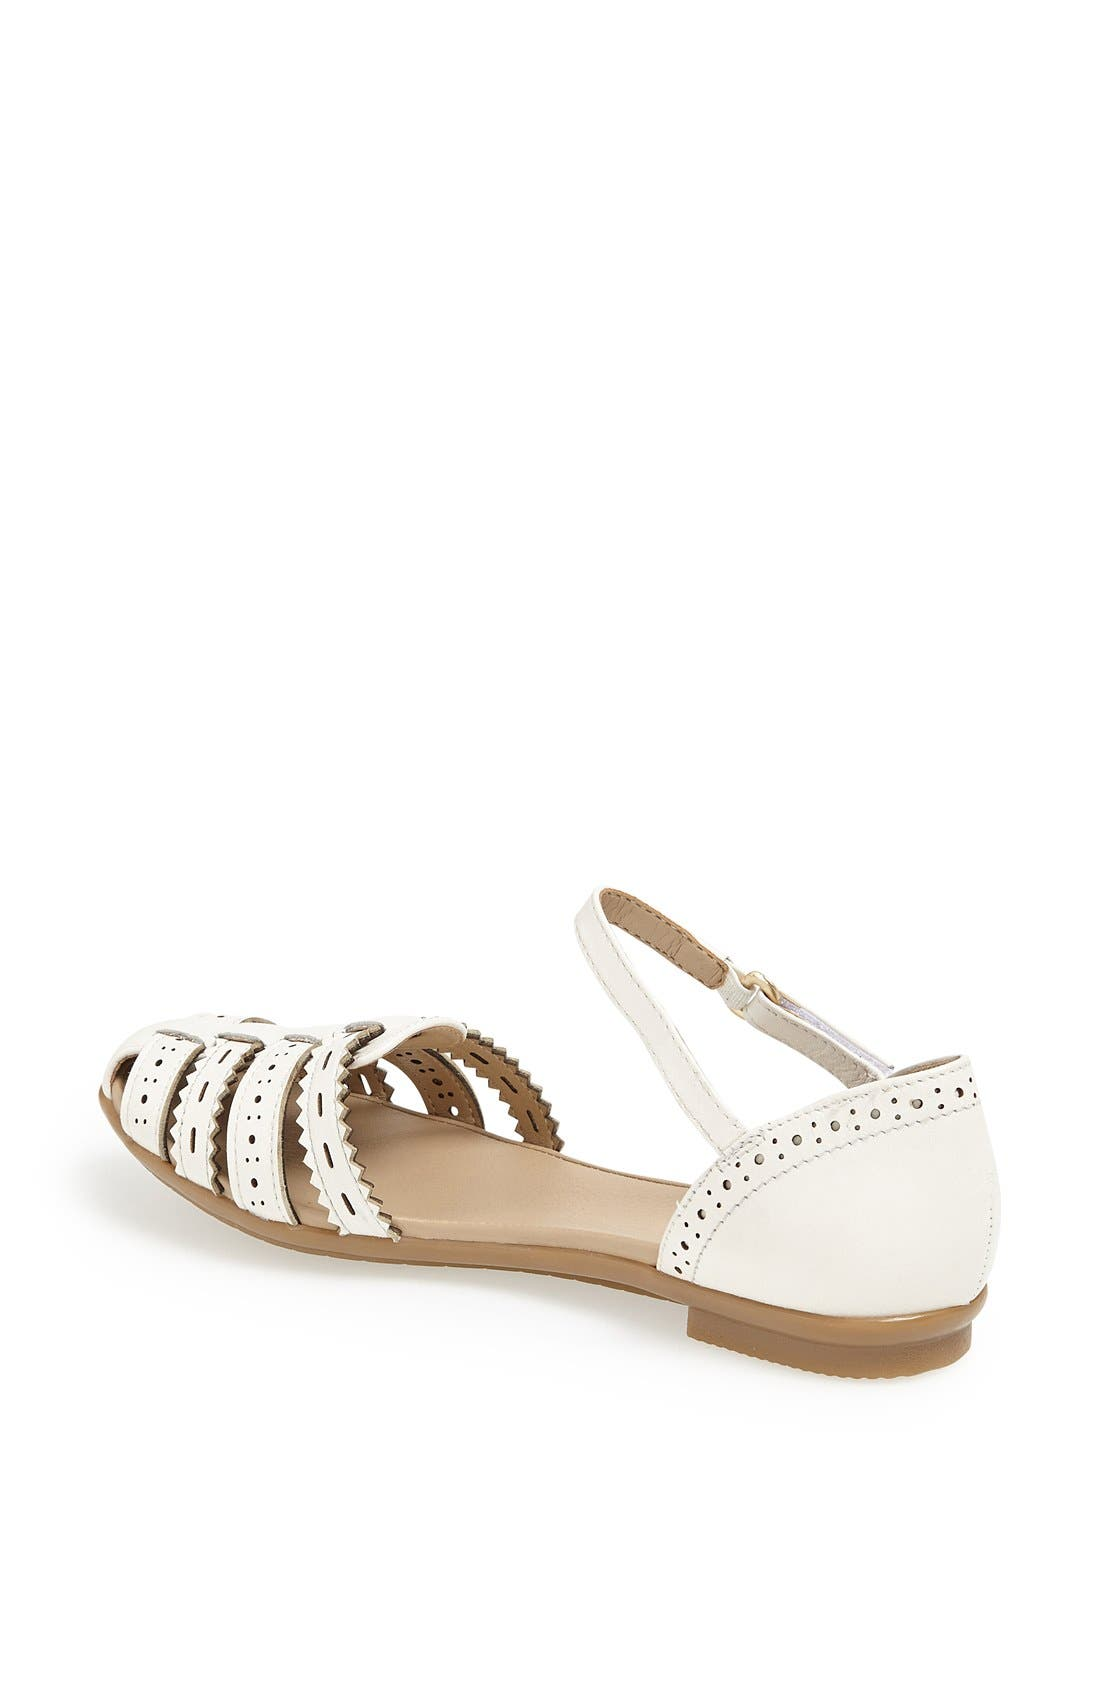 Alternate Image 2  - Easy Spirit 'e360 - Galfriday' Pinked & Perforated Leather Quarter Strap Sandal (Women)